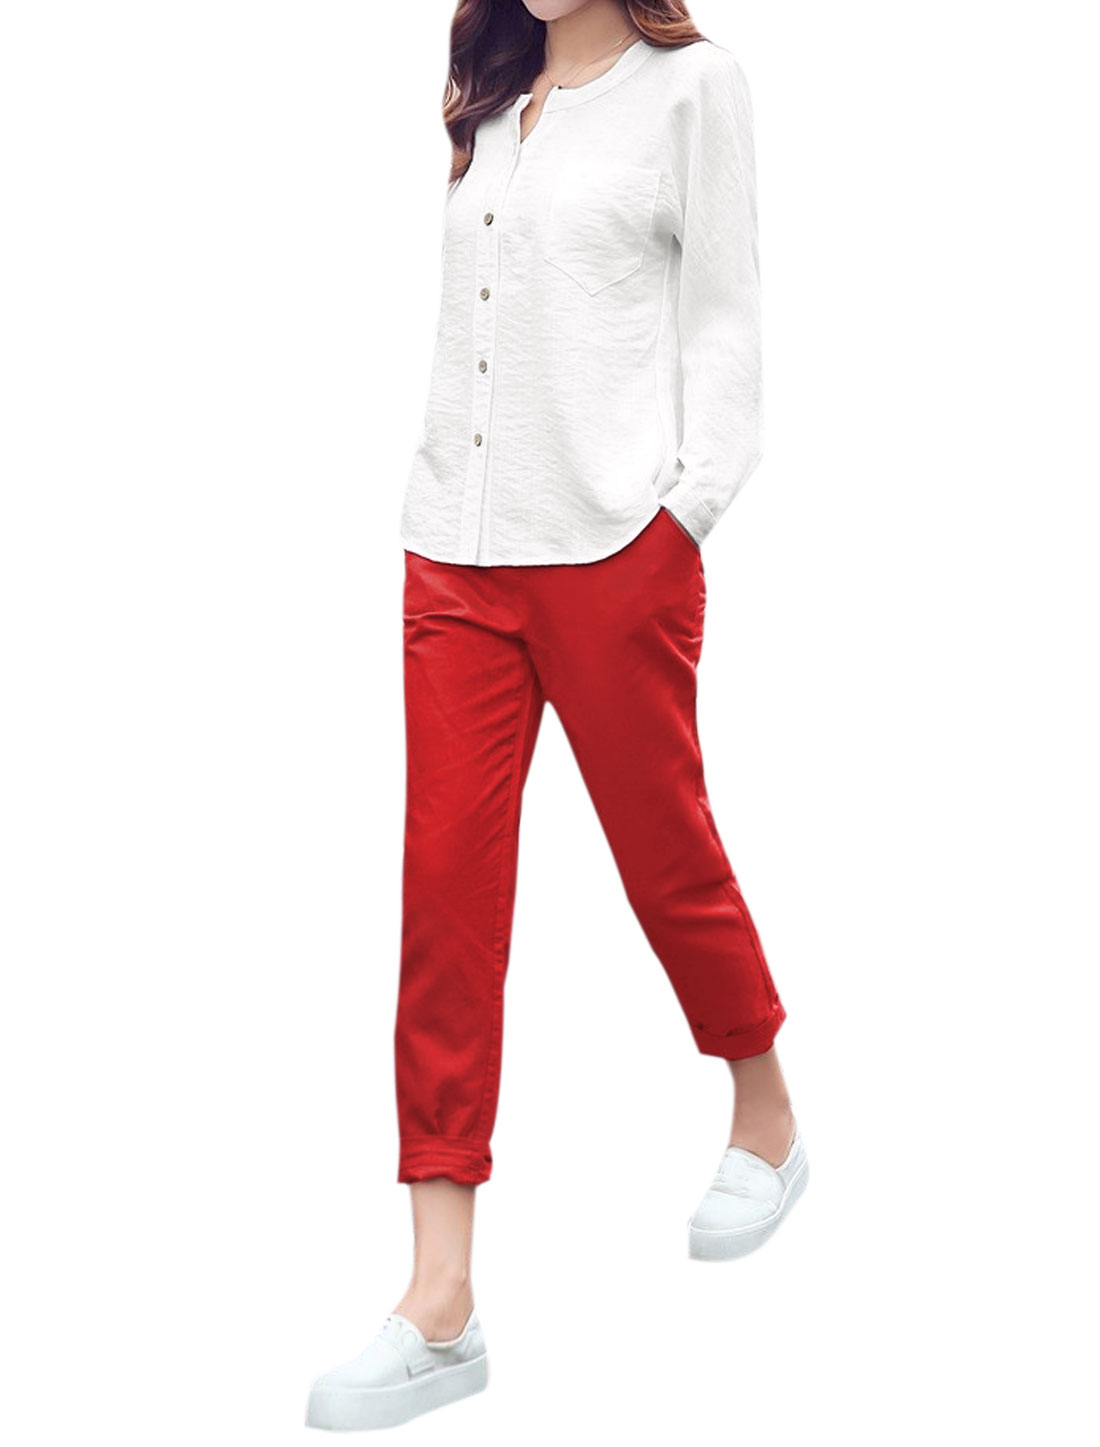 Lady Round Neck Casual Shirt w Elastic Waist Tapered Pants Sets White Red S